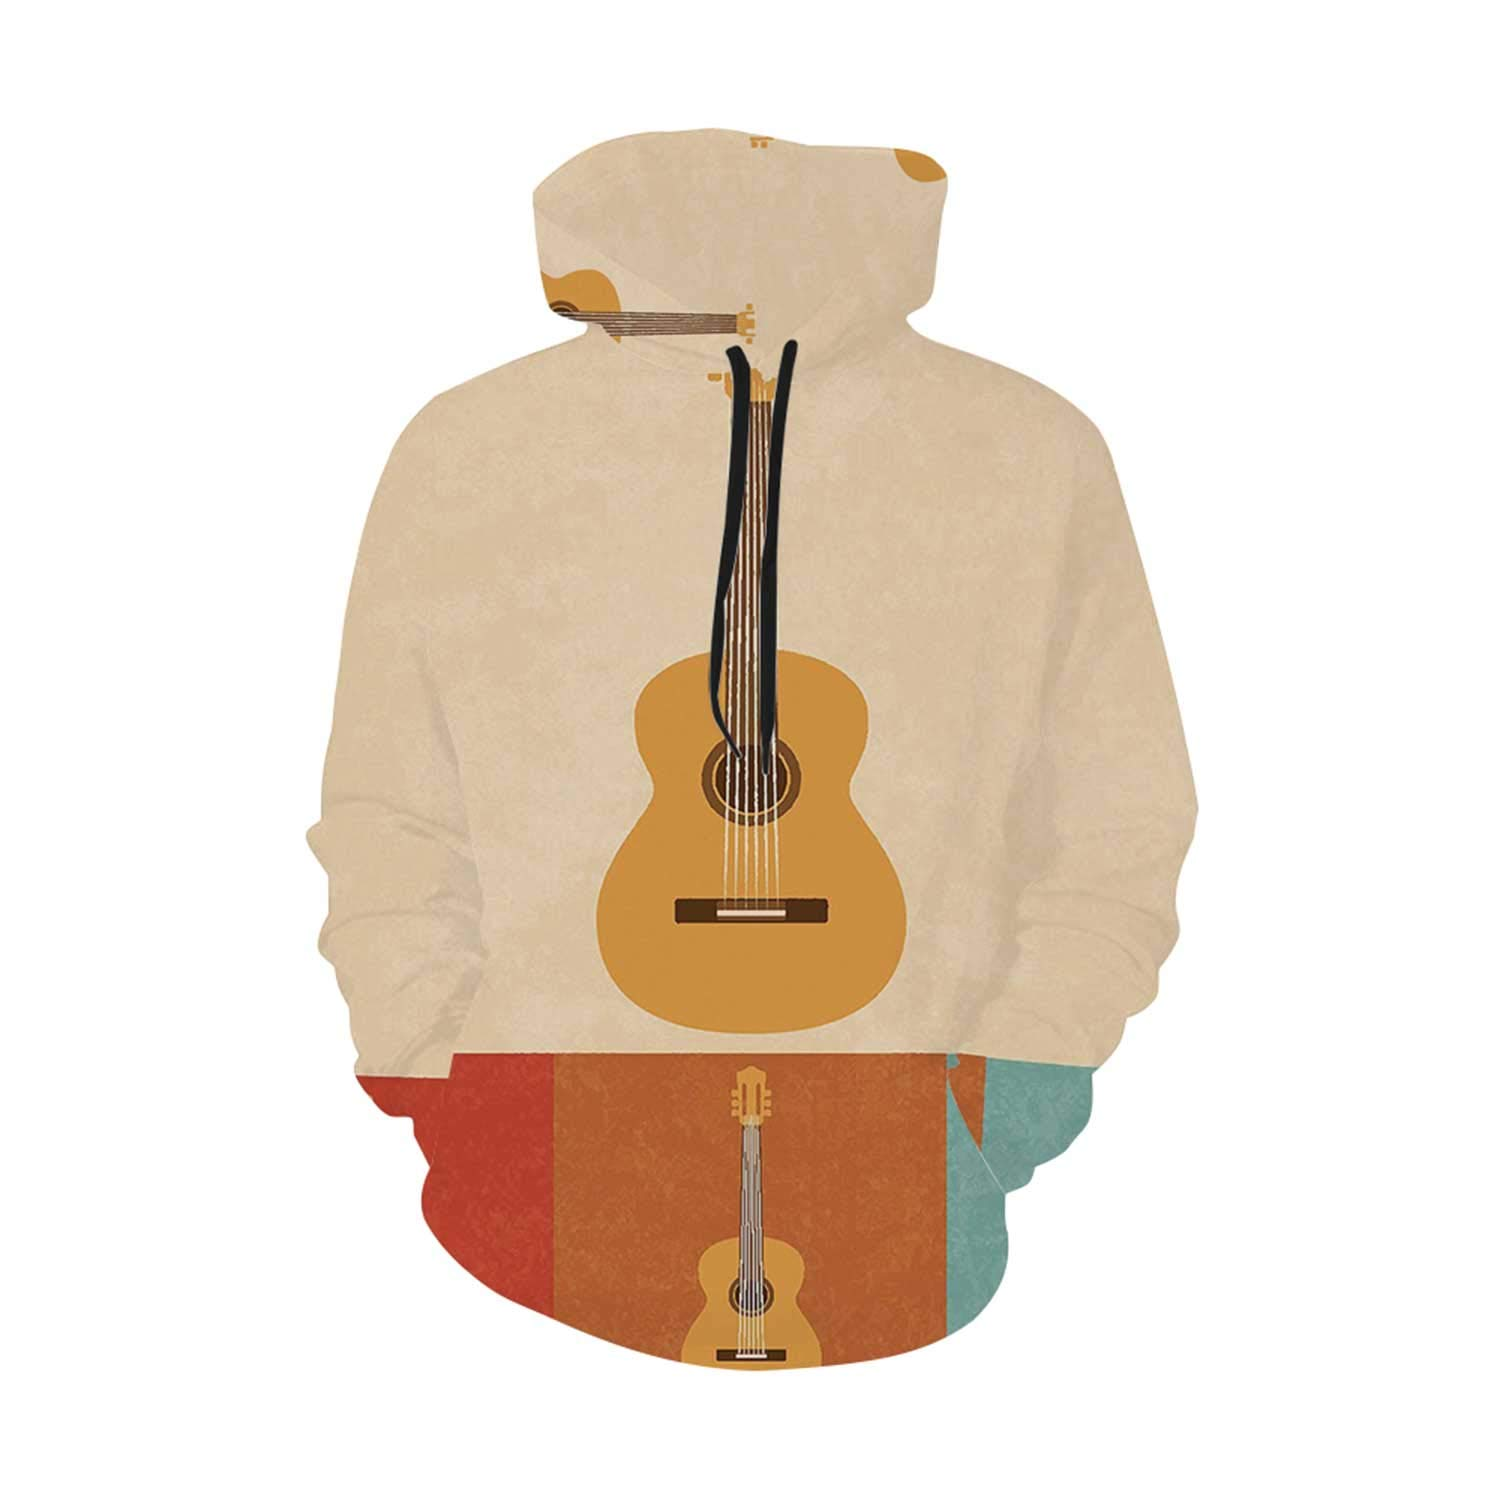 C COABALLA Guitar Comfortable Print Hoodie,for Leisure,XS,S,M,L,XL by C COABALLA